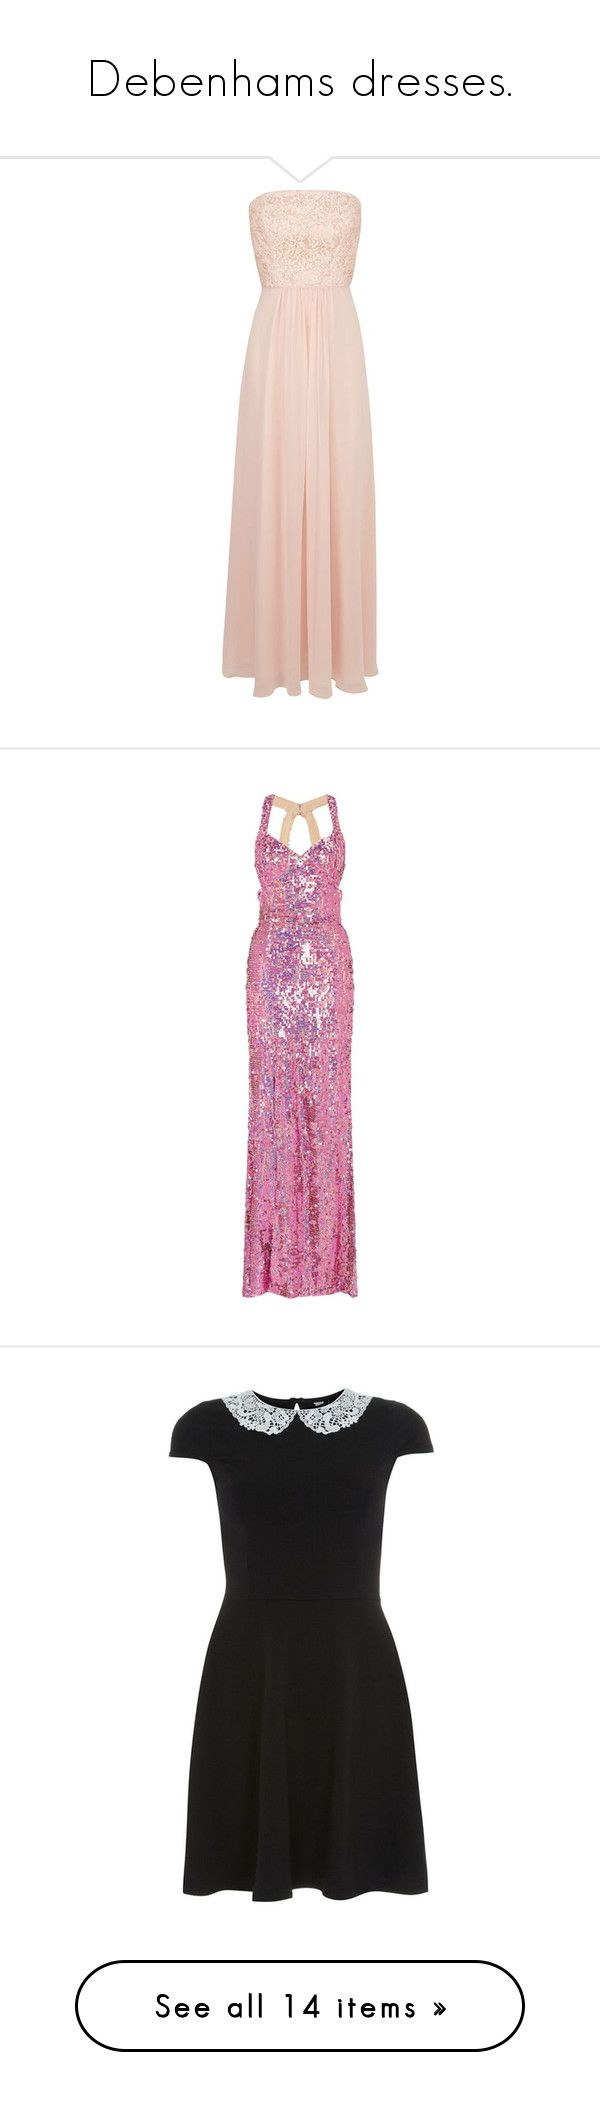 """Debenhams dresses."" by crazygirlandproud ❤ liked on Polyvore featuring dresses, pink dress, maxi dress, maxi length dresses, pink maxi dress, pink sequin dresses, pink sequin cocktail dress, purple cocktail dresses, fuschia dress and sequined dresses"